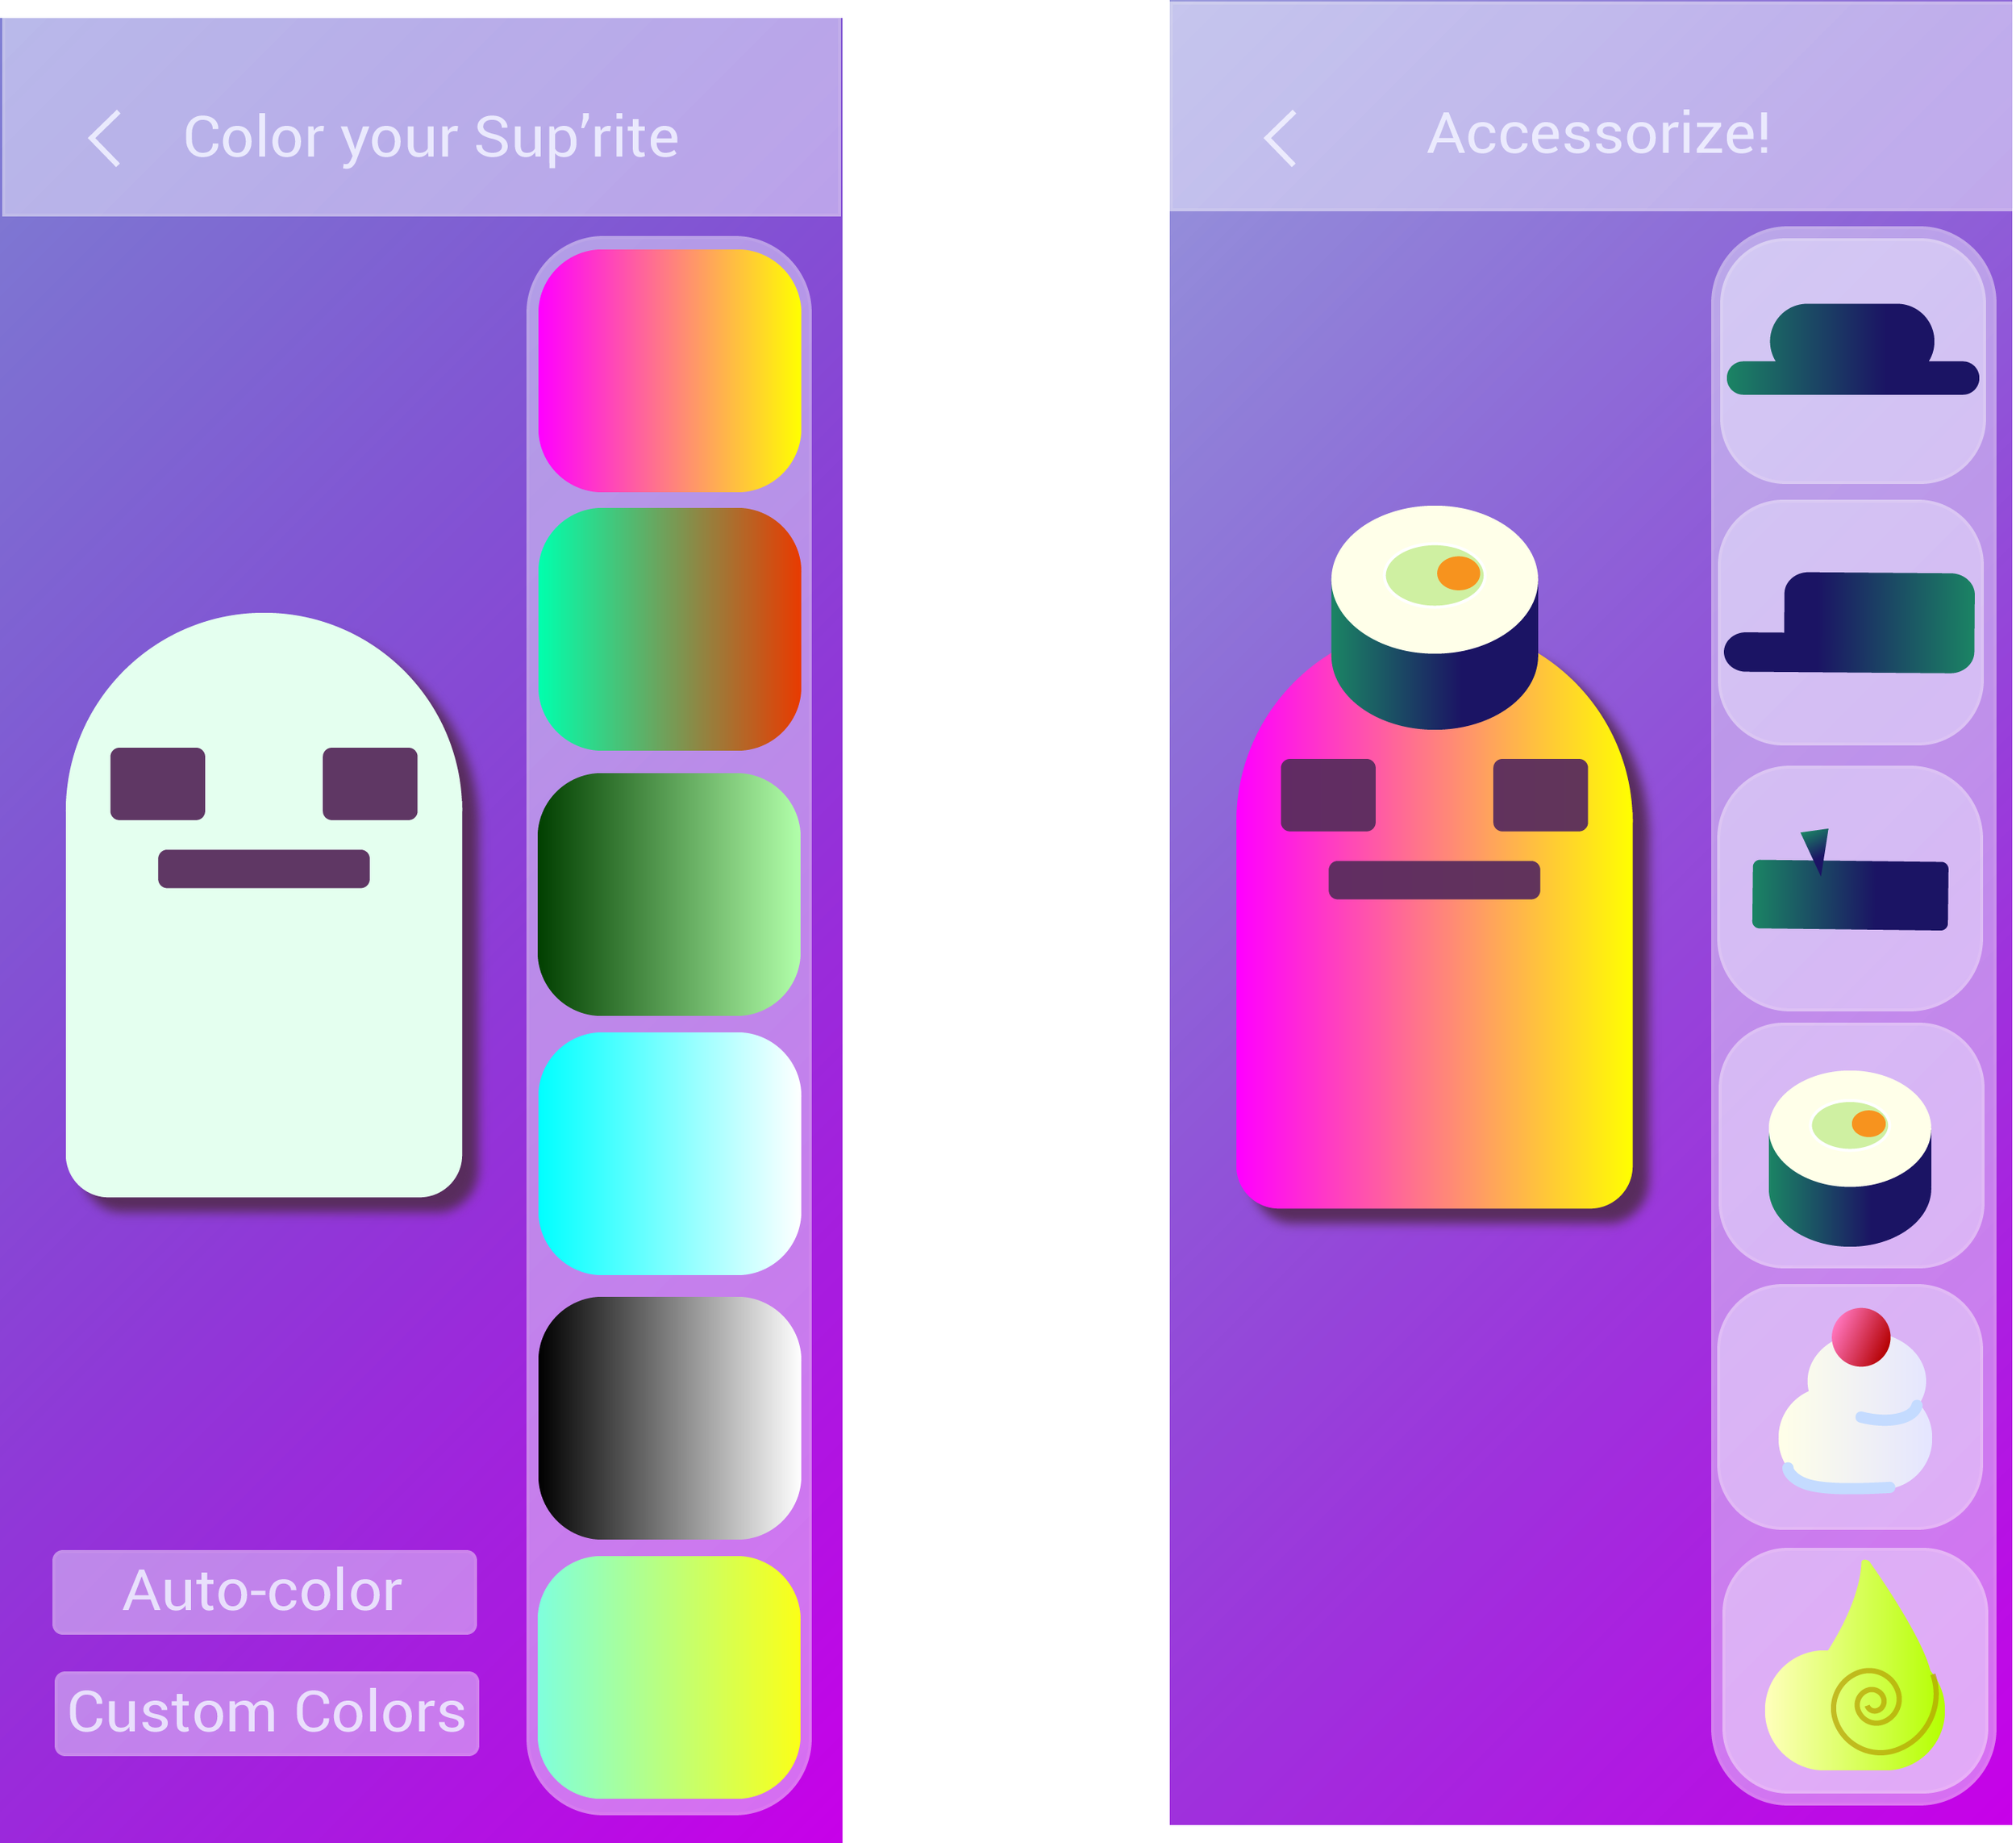 Users express their personality in avatar designs, accessorize with fun items like the sushi hat